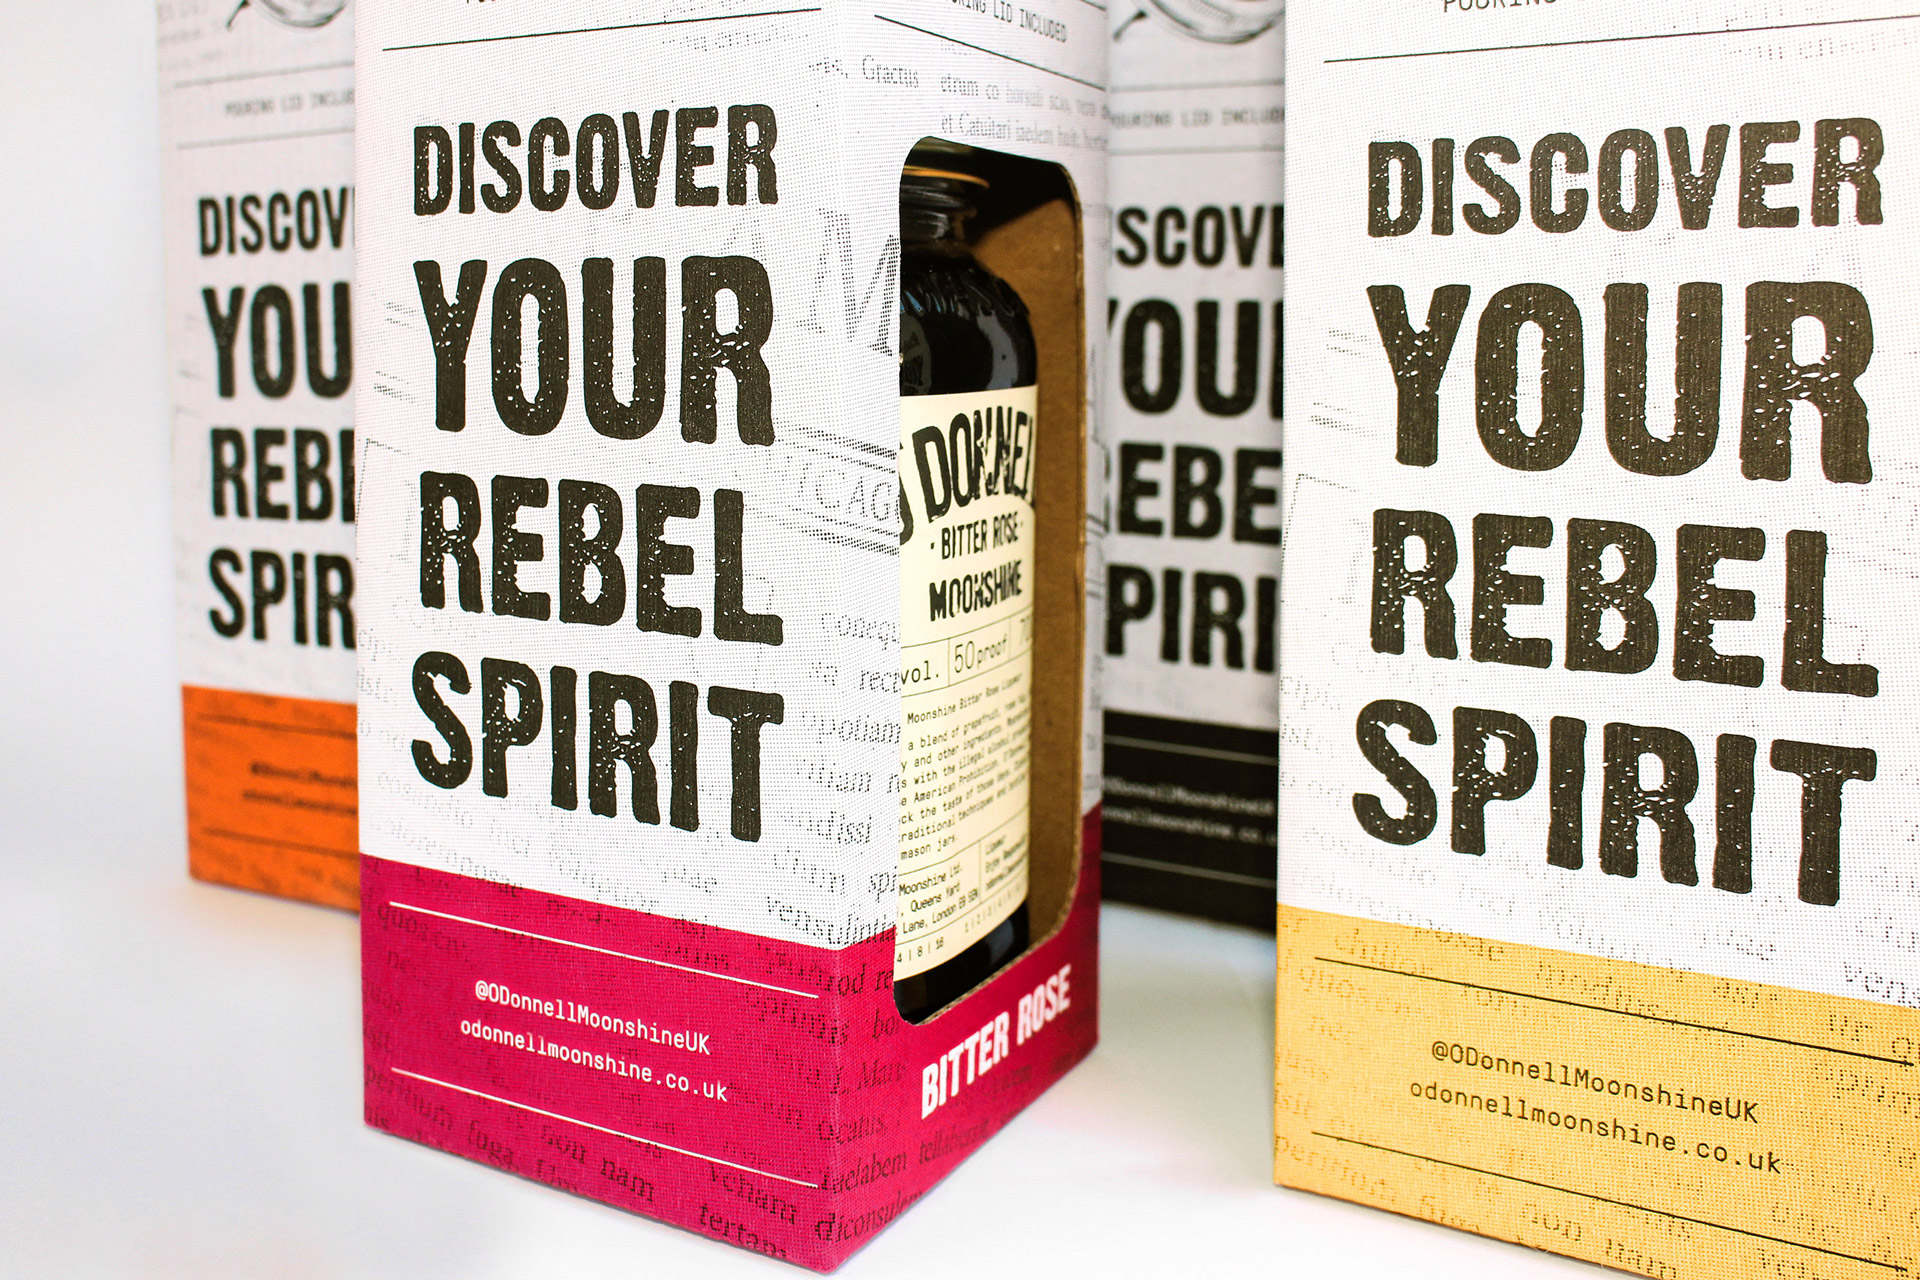 O'Donnell Moonshine Limited Packaging Close